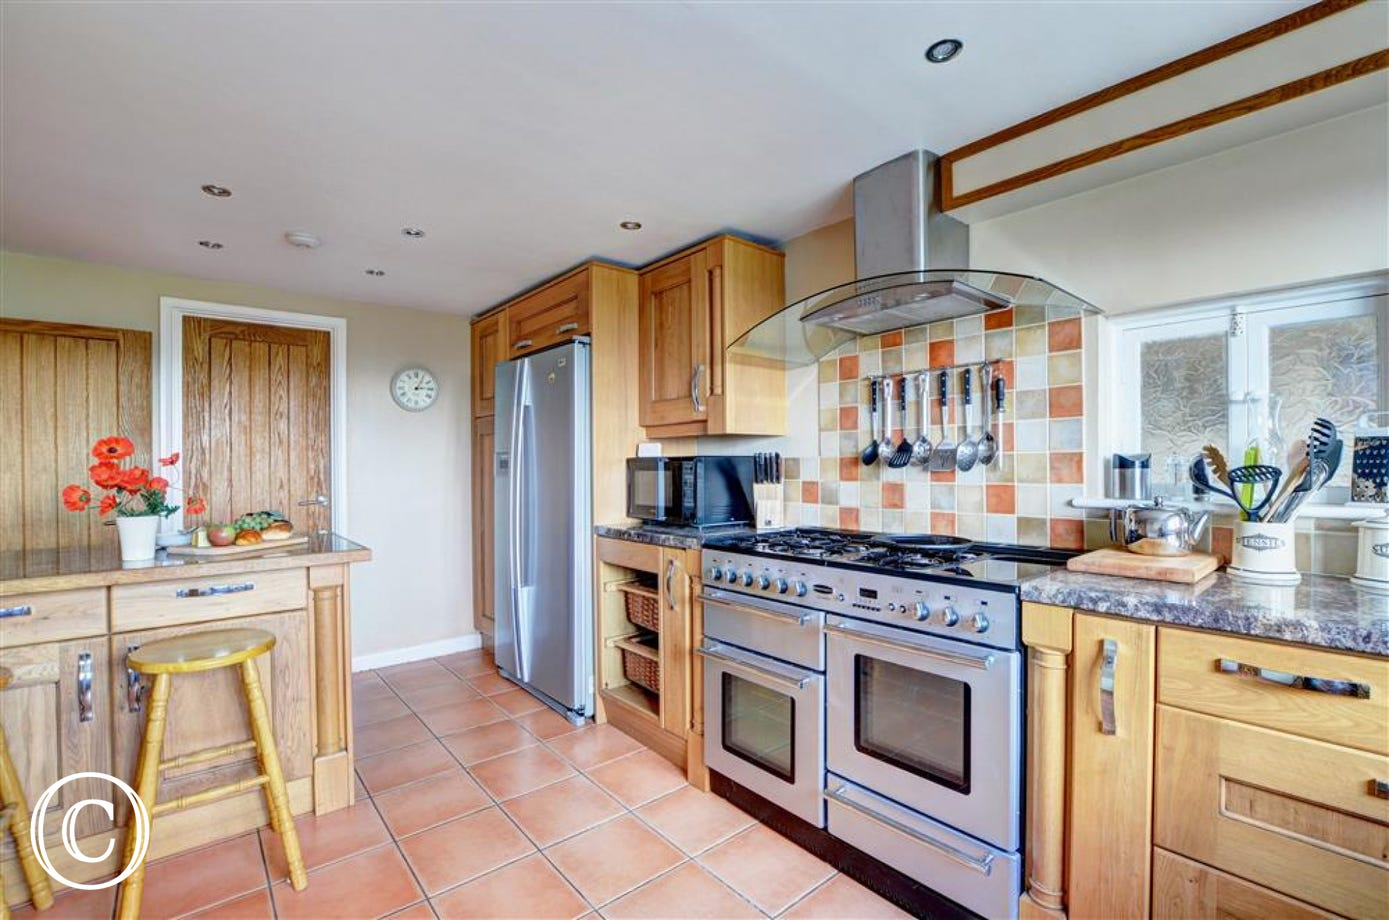 The spacious kitchen has a double oven and is very well equipped